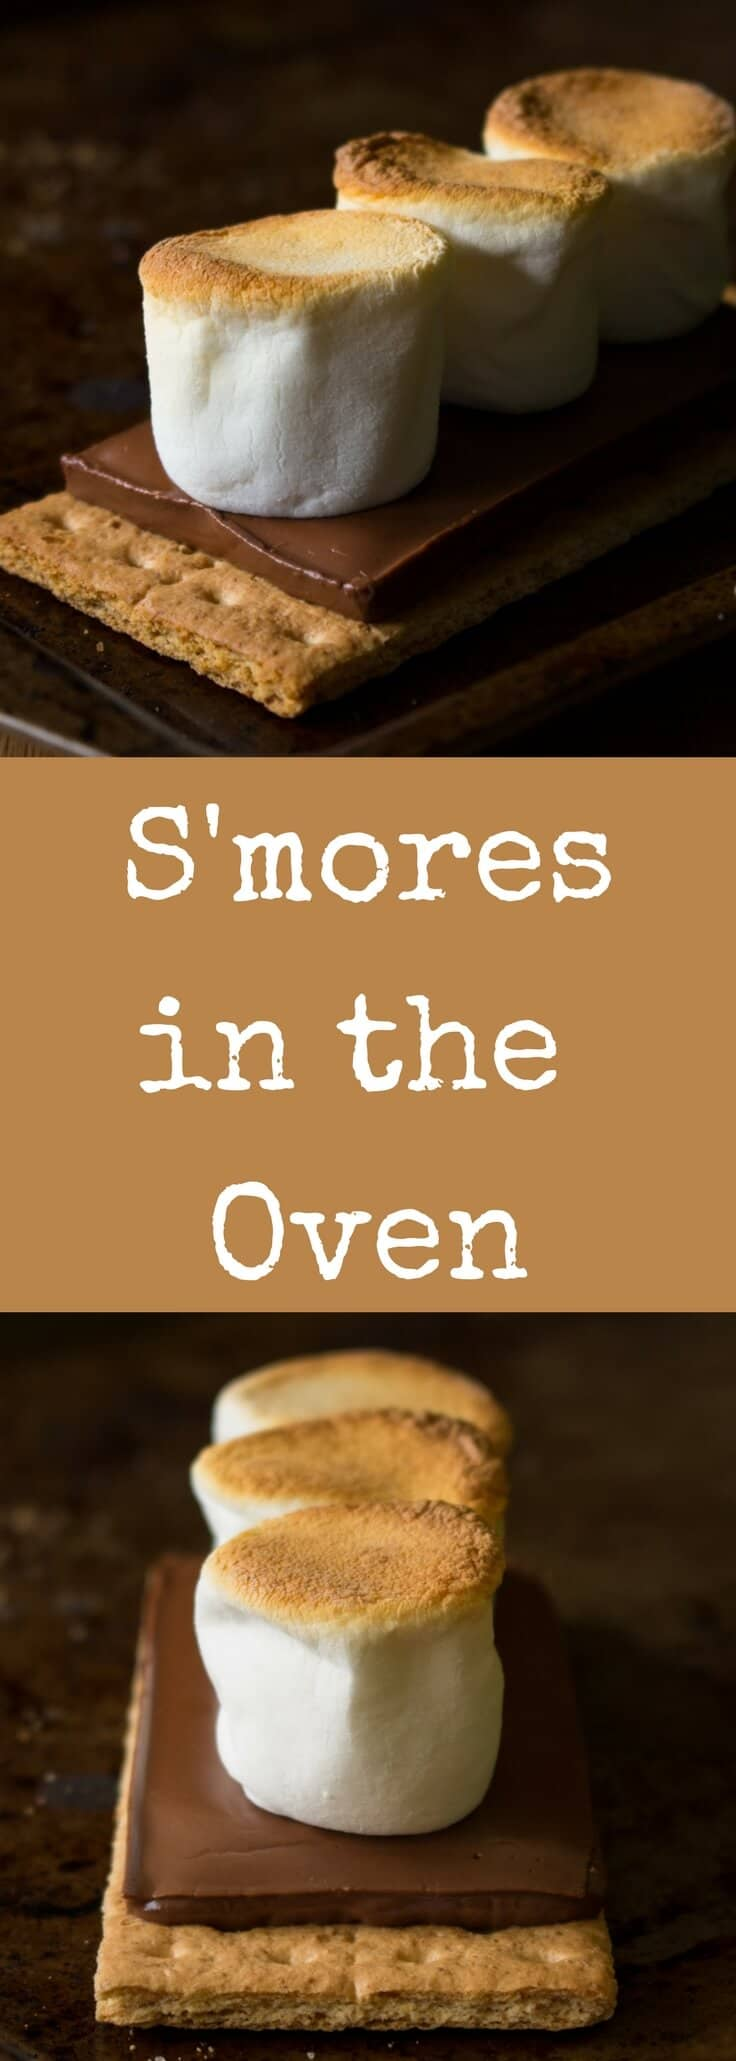 It's so easy to make smores in the oven! Make as many or as few as you want in just SECONDS with this super simple recipe. Fast and delicious!